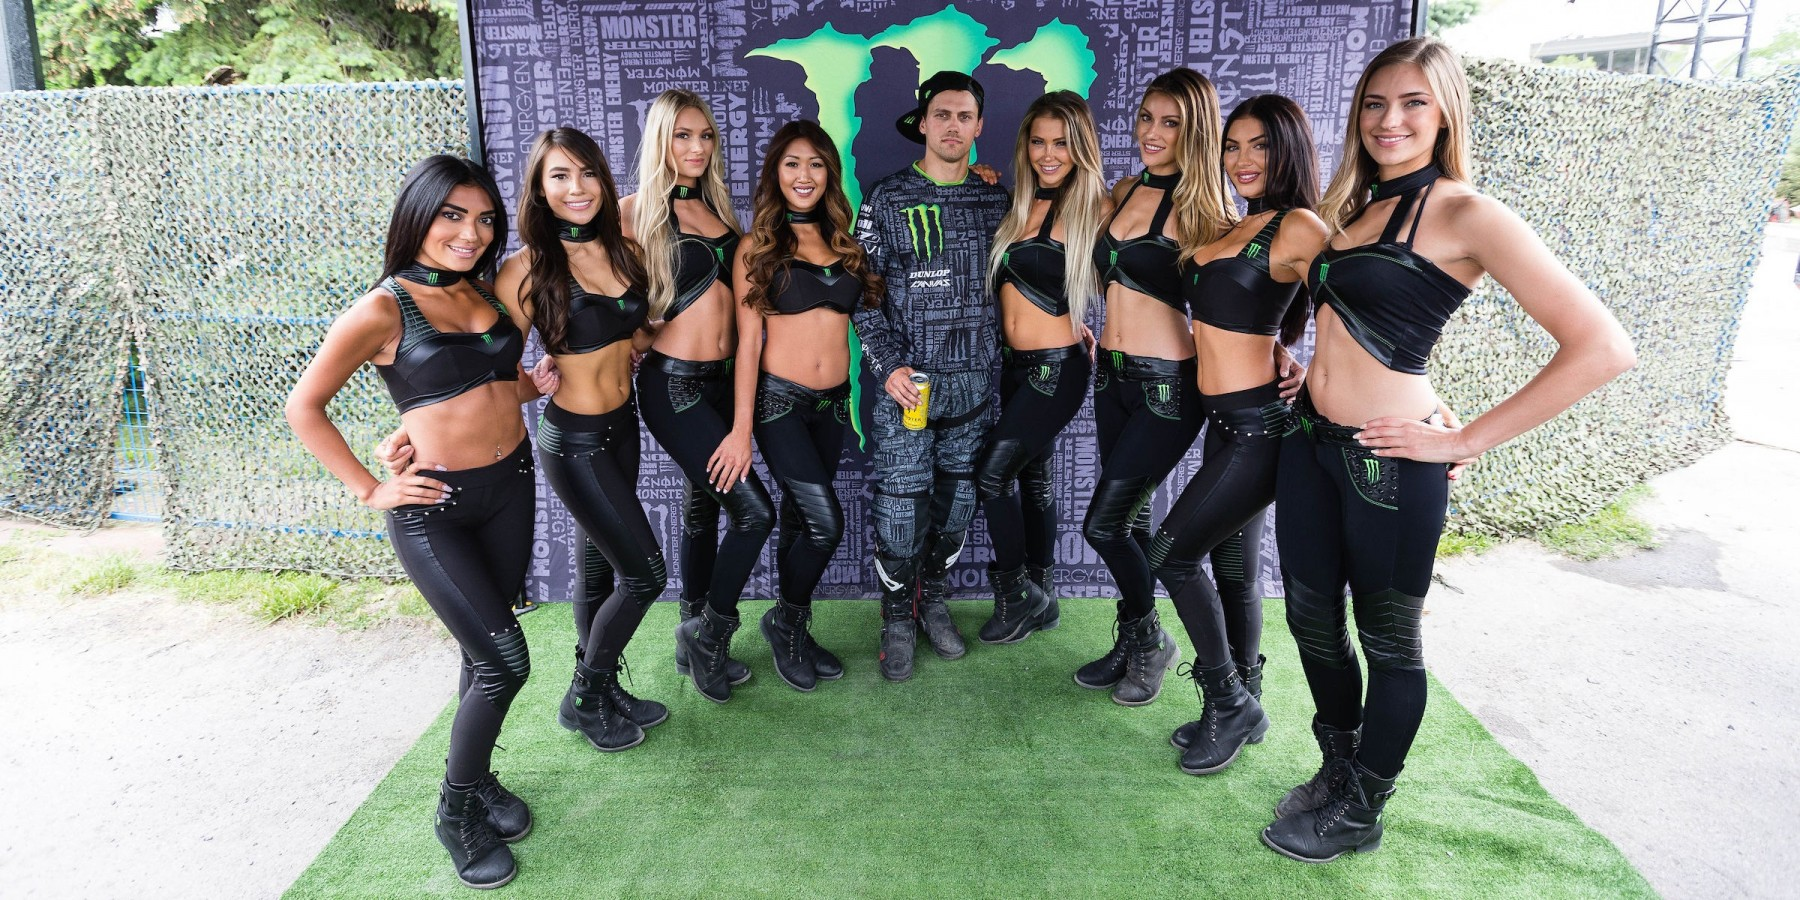 Shots of the Canadian Monster Girls around the Monster compound at Formula 1 Canadian Grand Prix